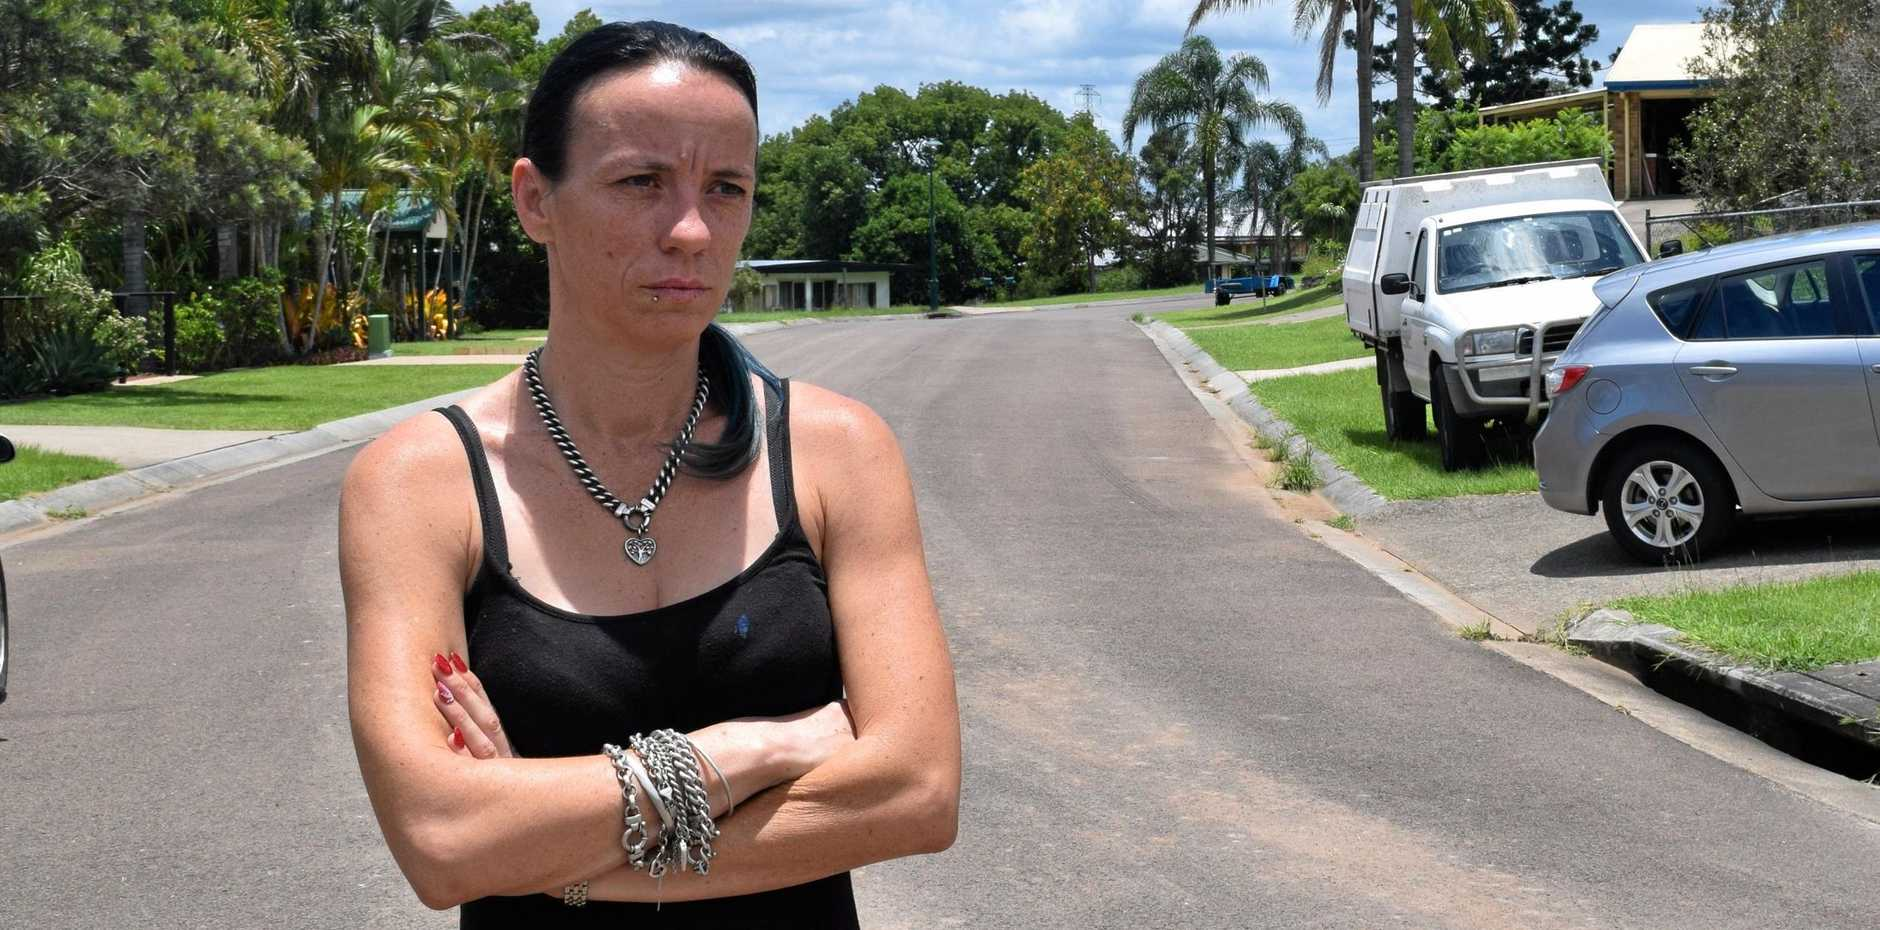 IN THE DARK: Sherylee Holt has been trying to find her stolen car (inset), which has disappeared again.